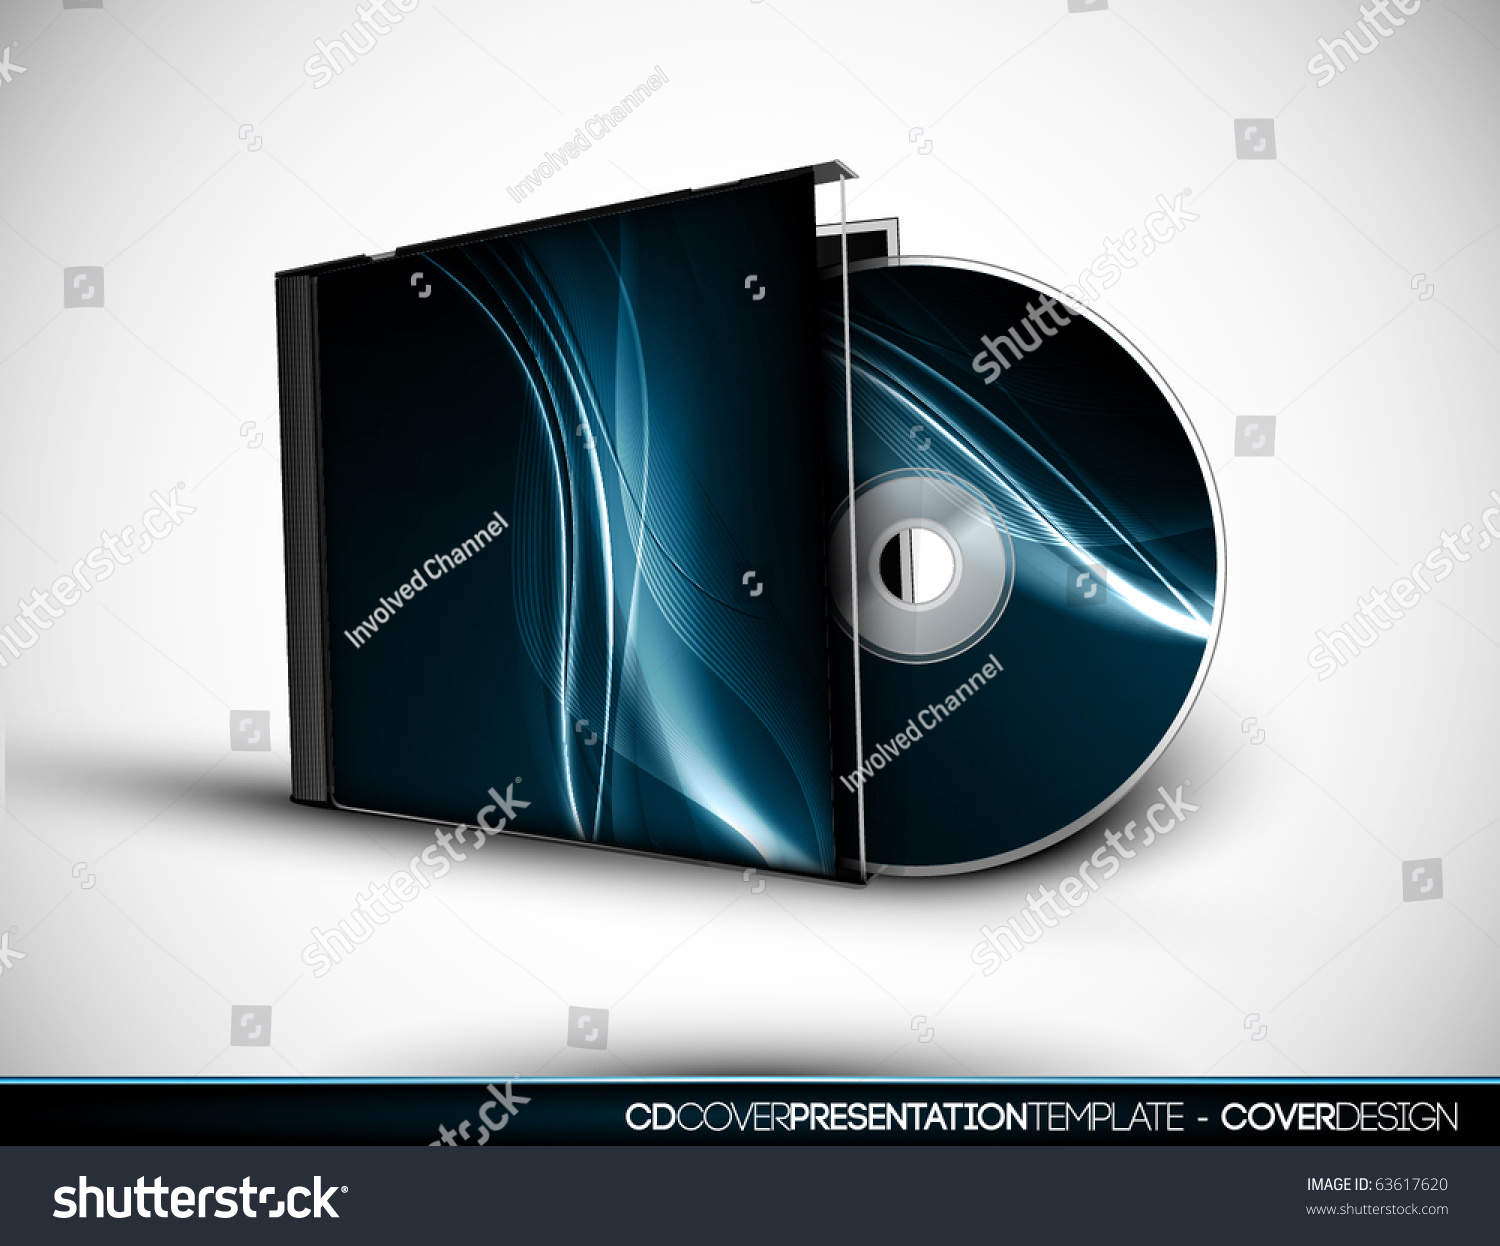 cd cover design 3d presentation template stock vector 63617620, Presentation templates